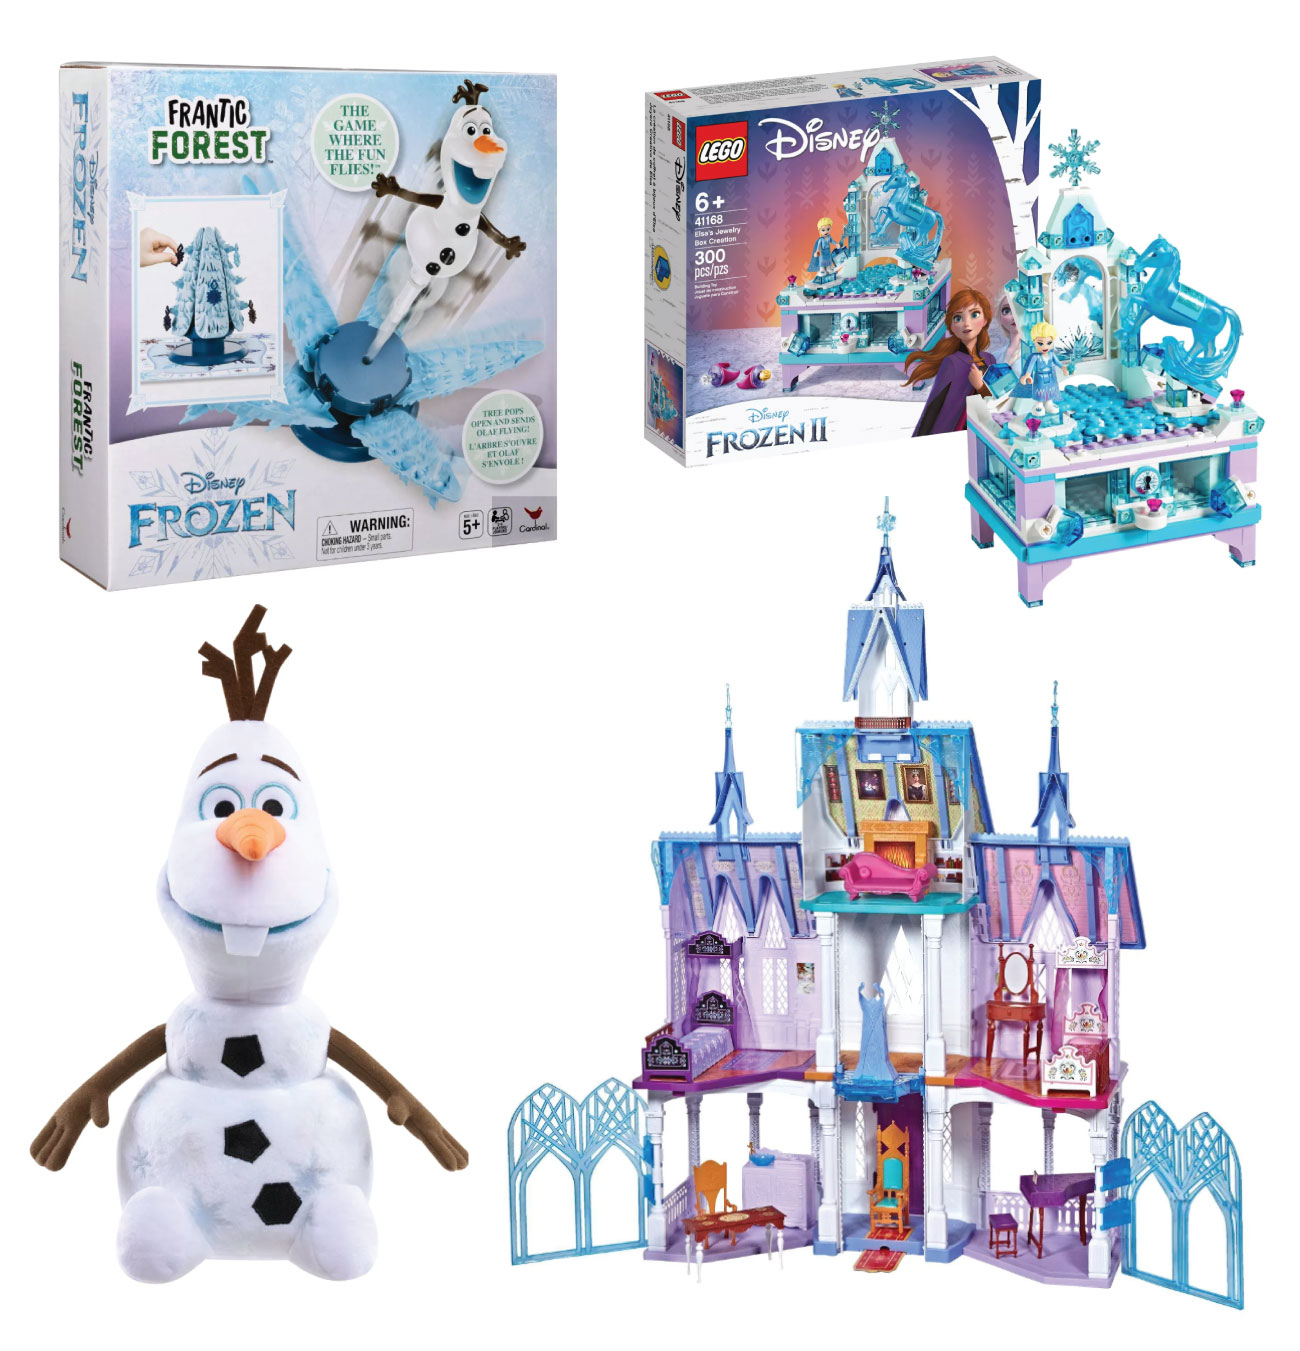 Three Disney Frozen 2 gift sets and an Olaf plush doll